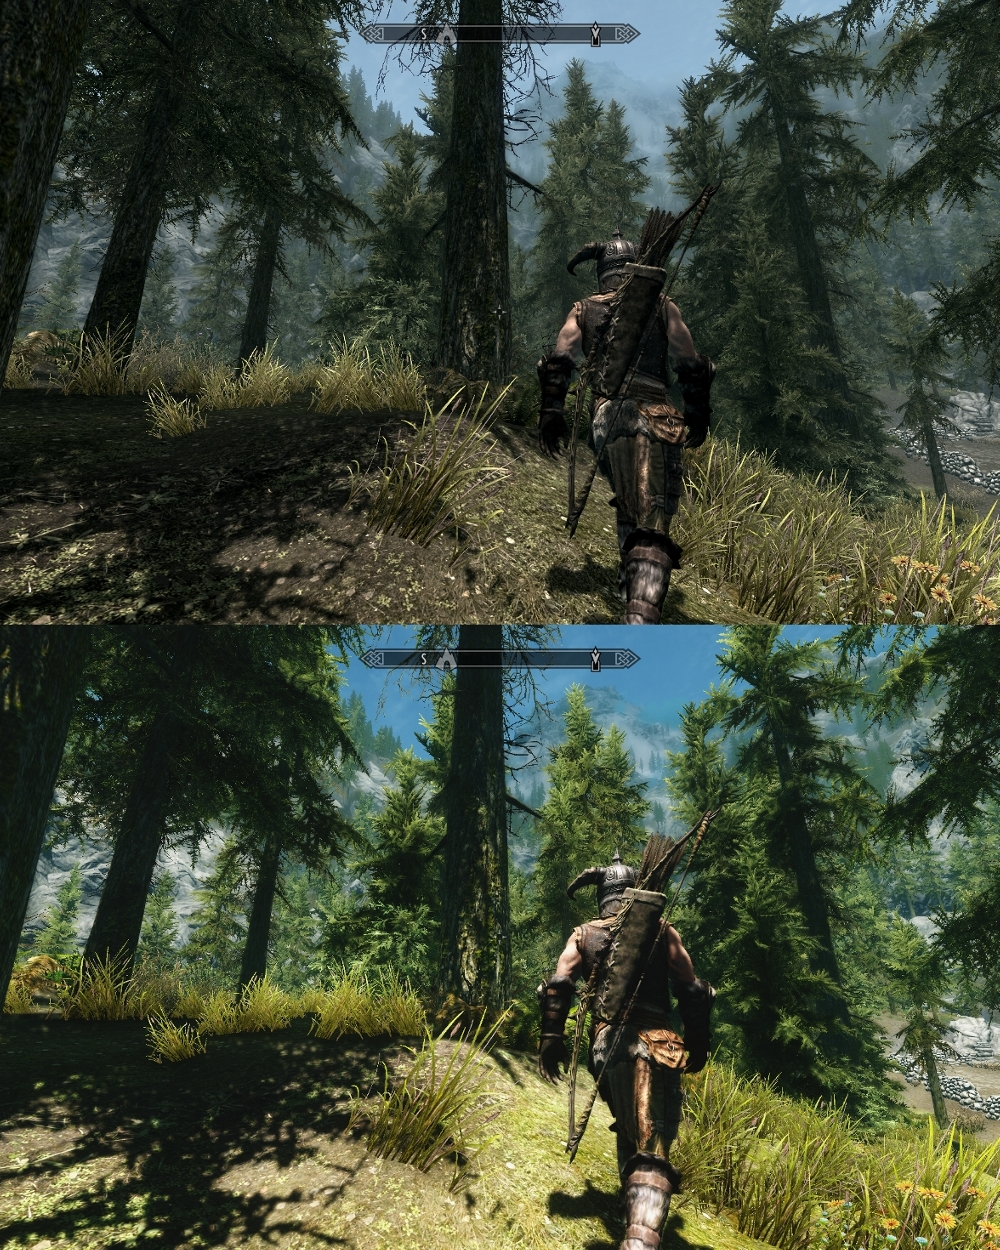 How much better is ENB 102 vs Realistic colors? Performance